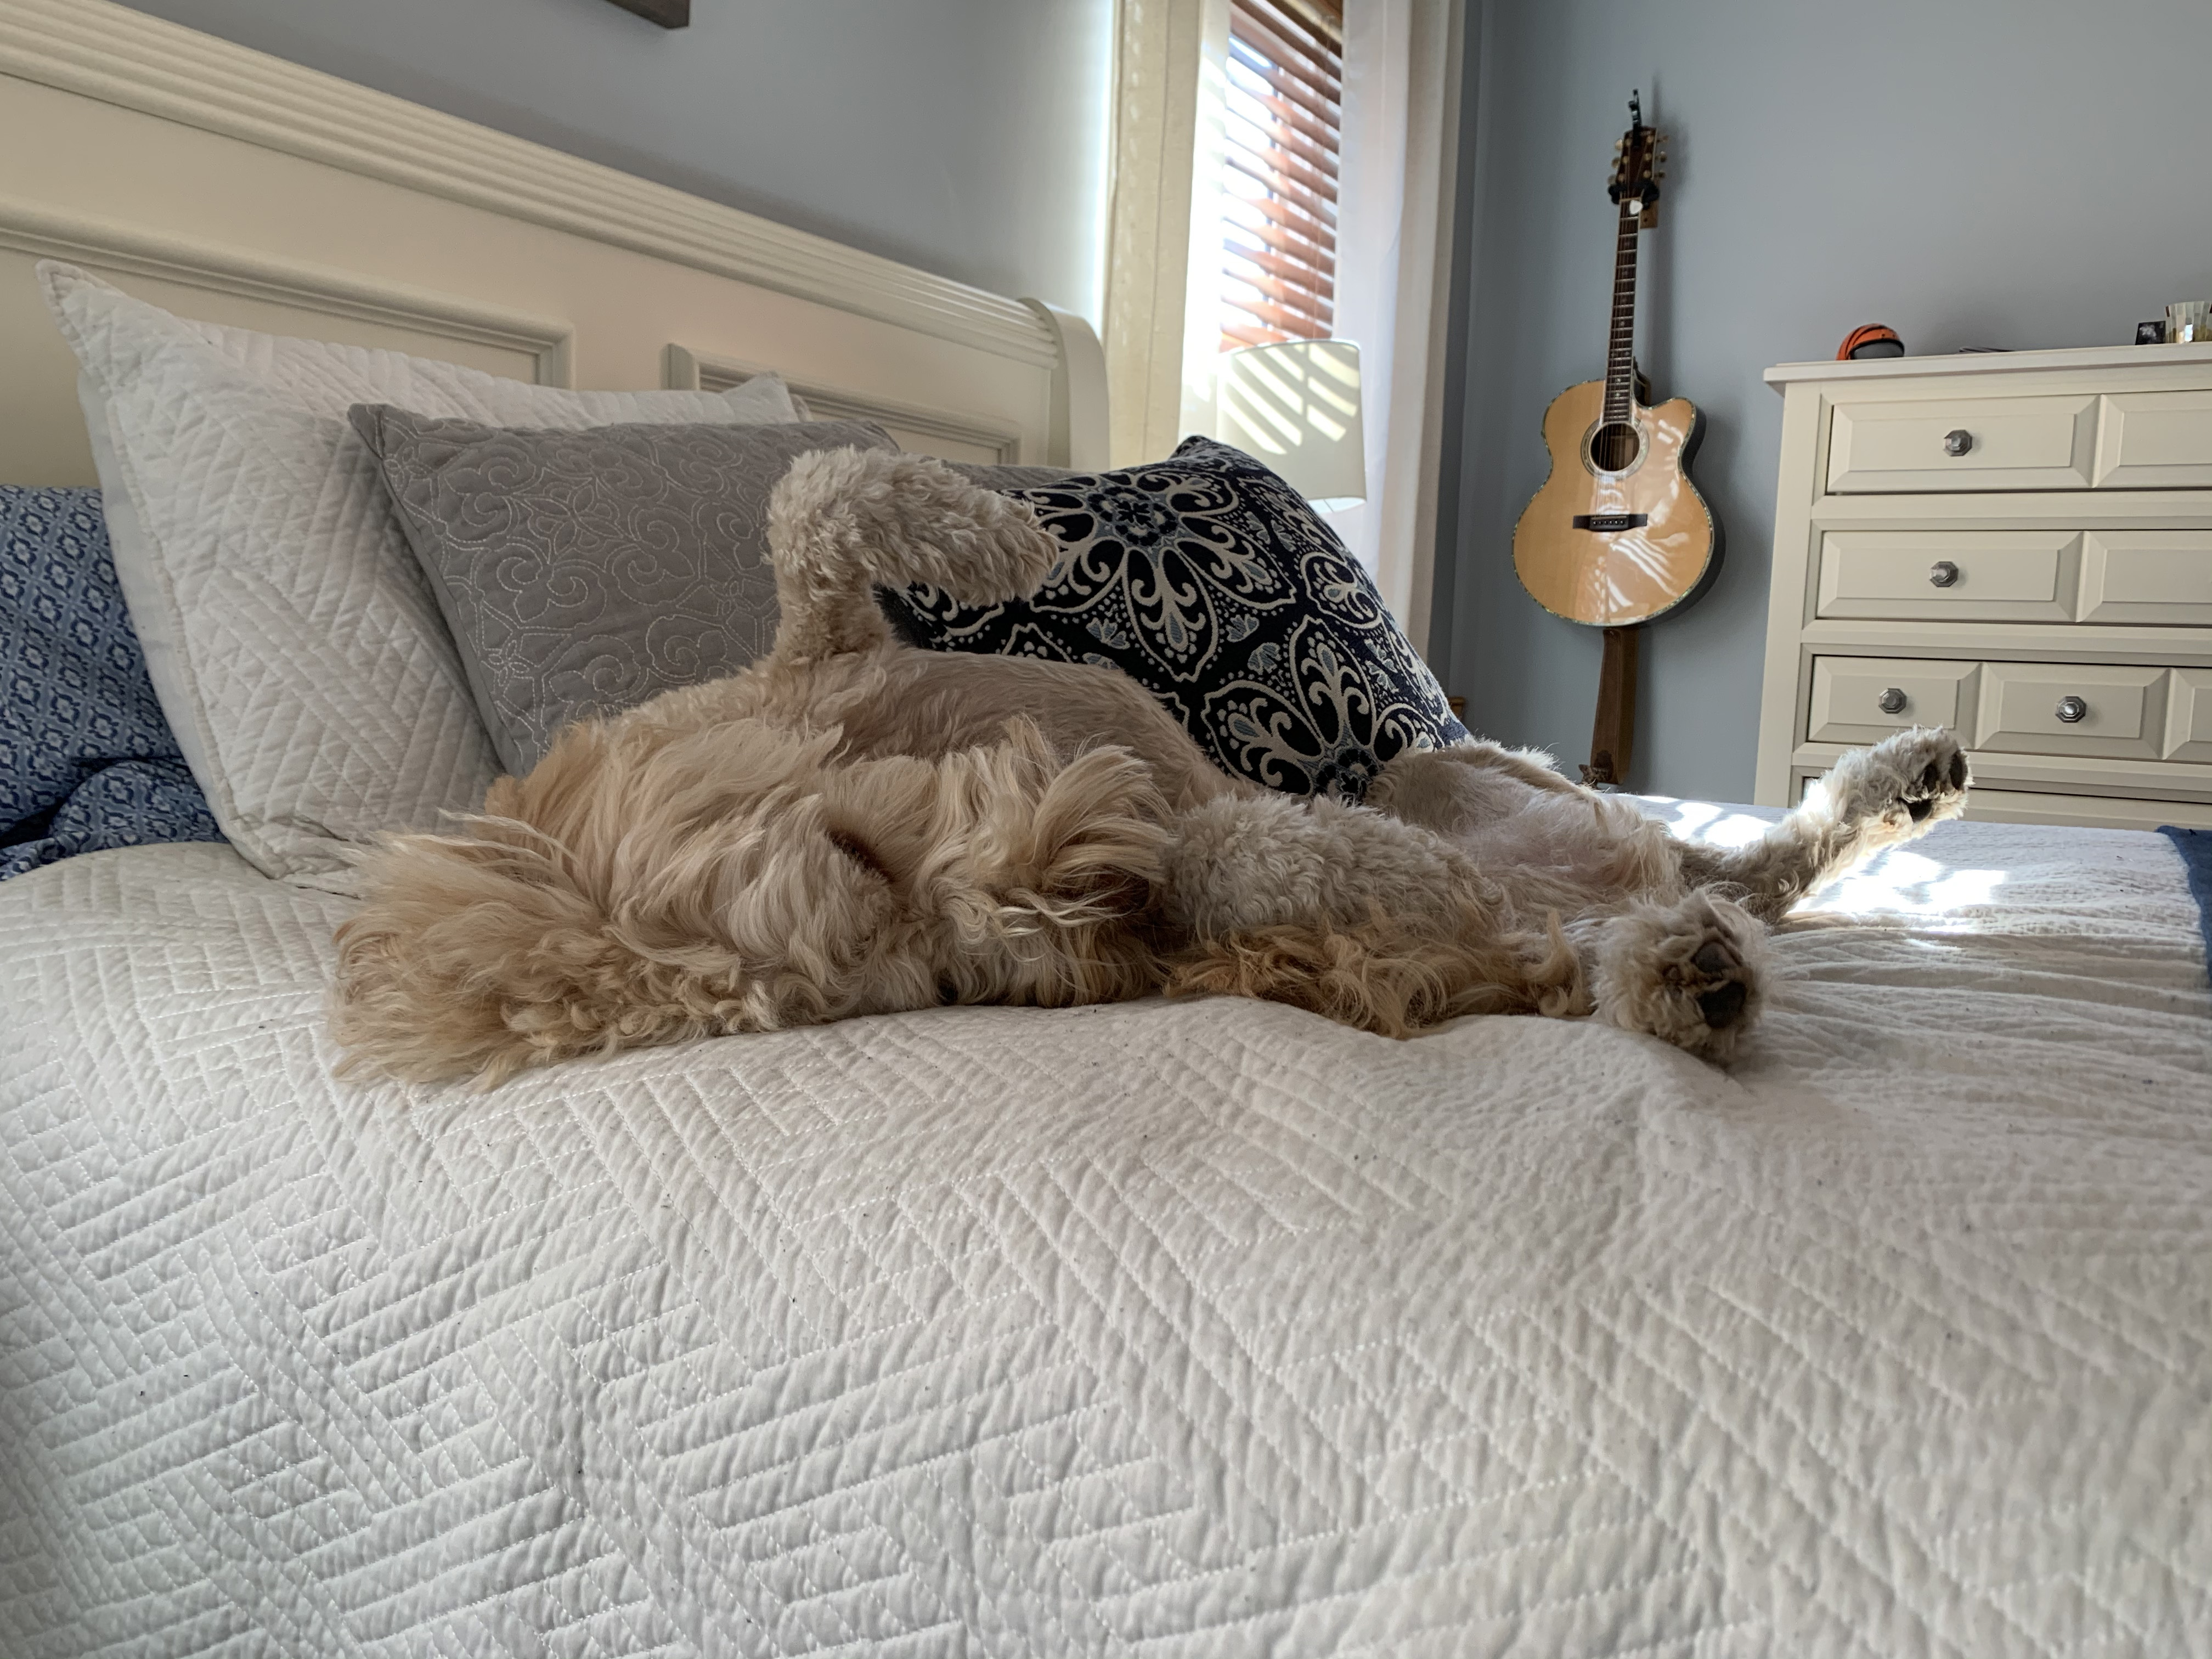 Goldendoodle snoozing